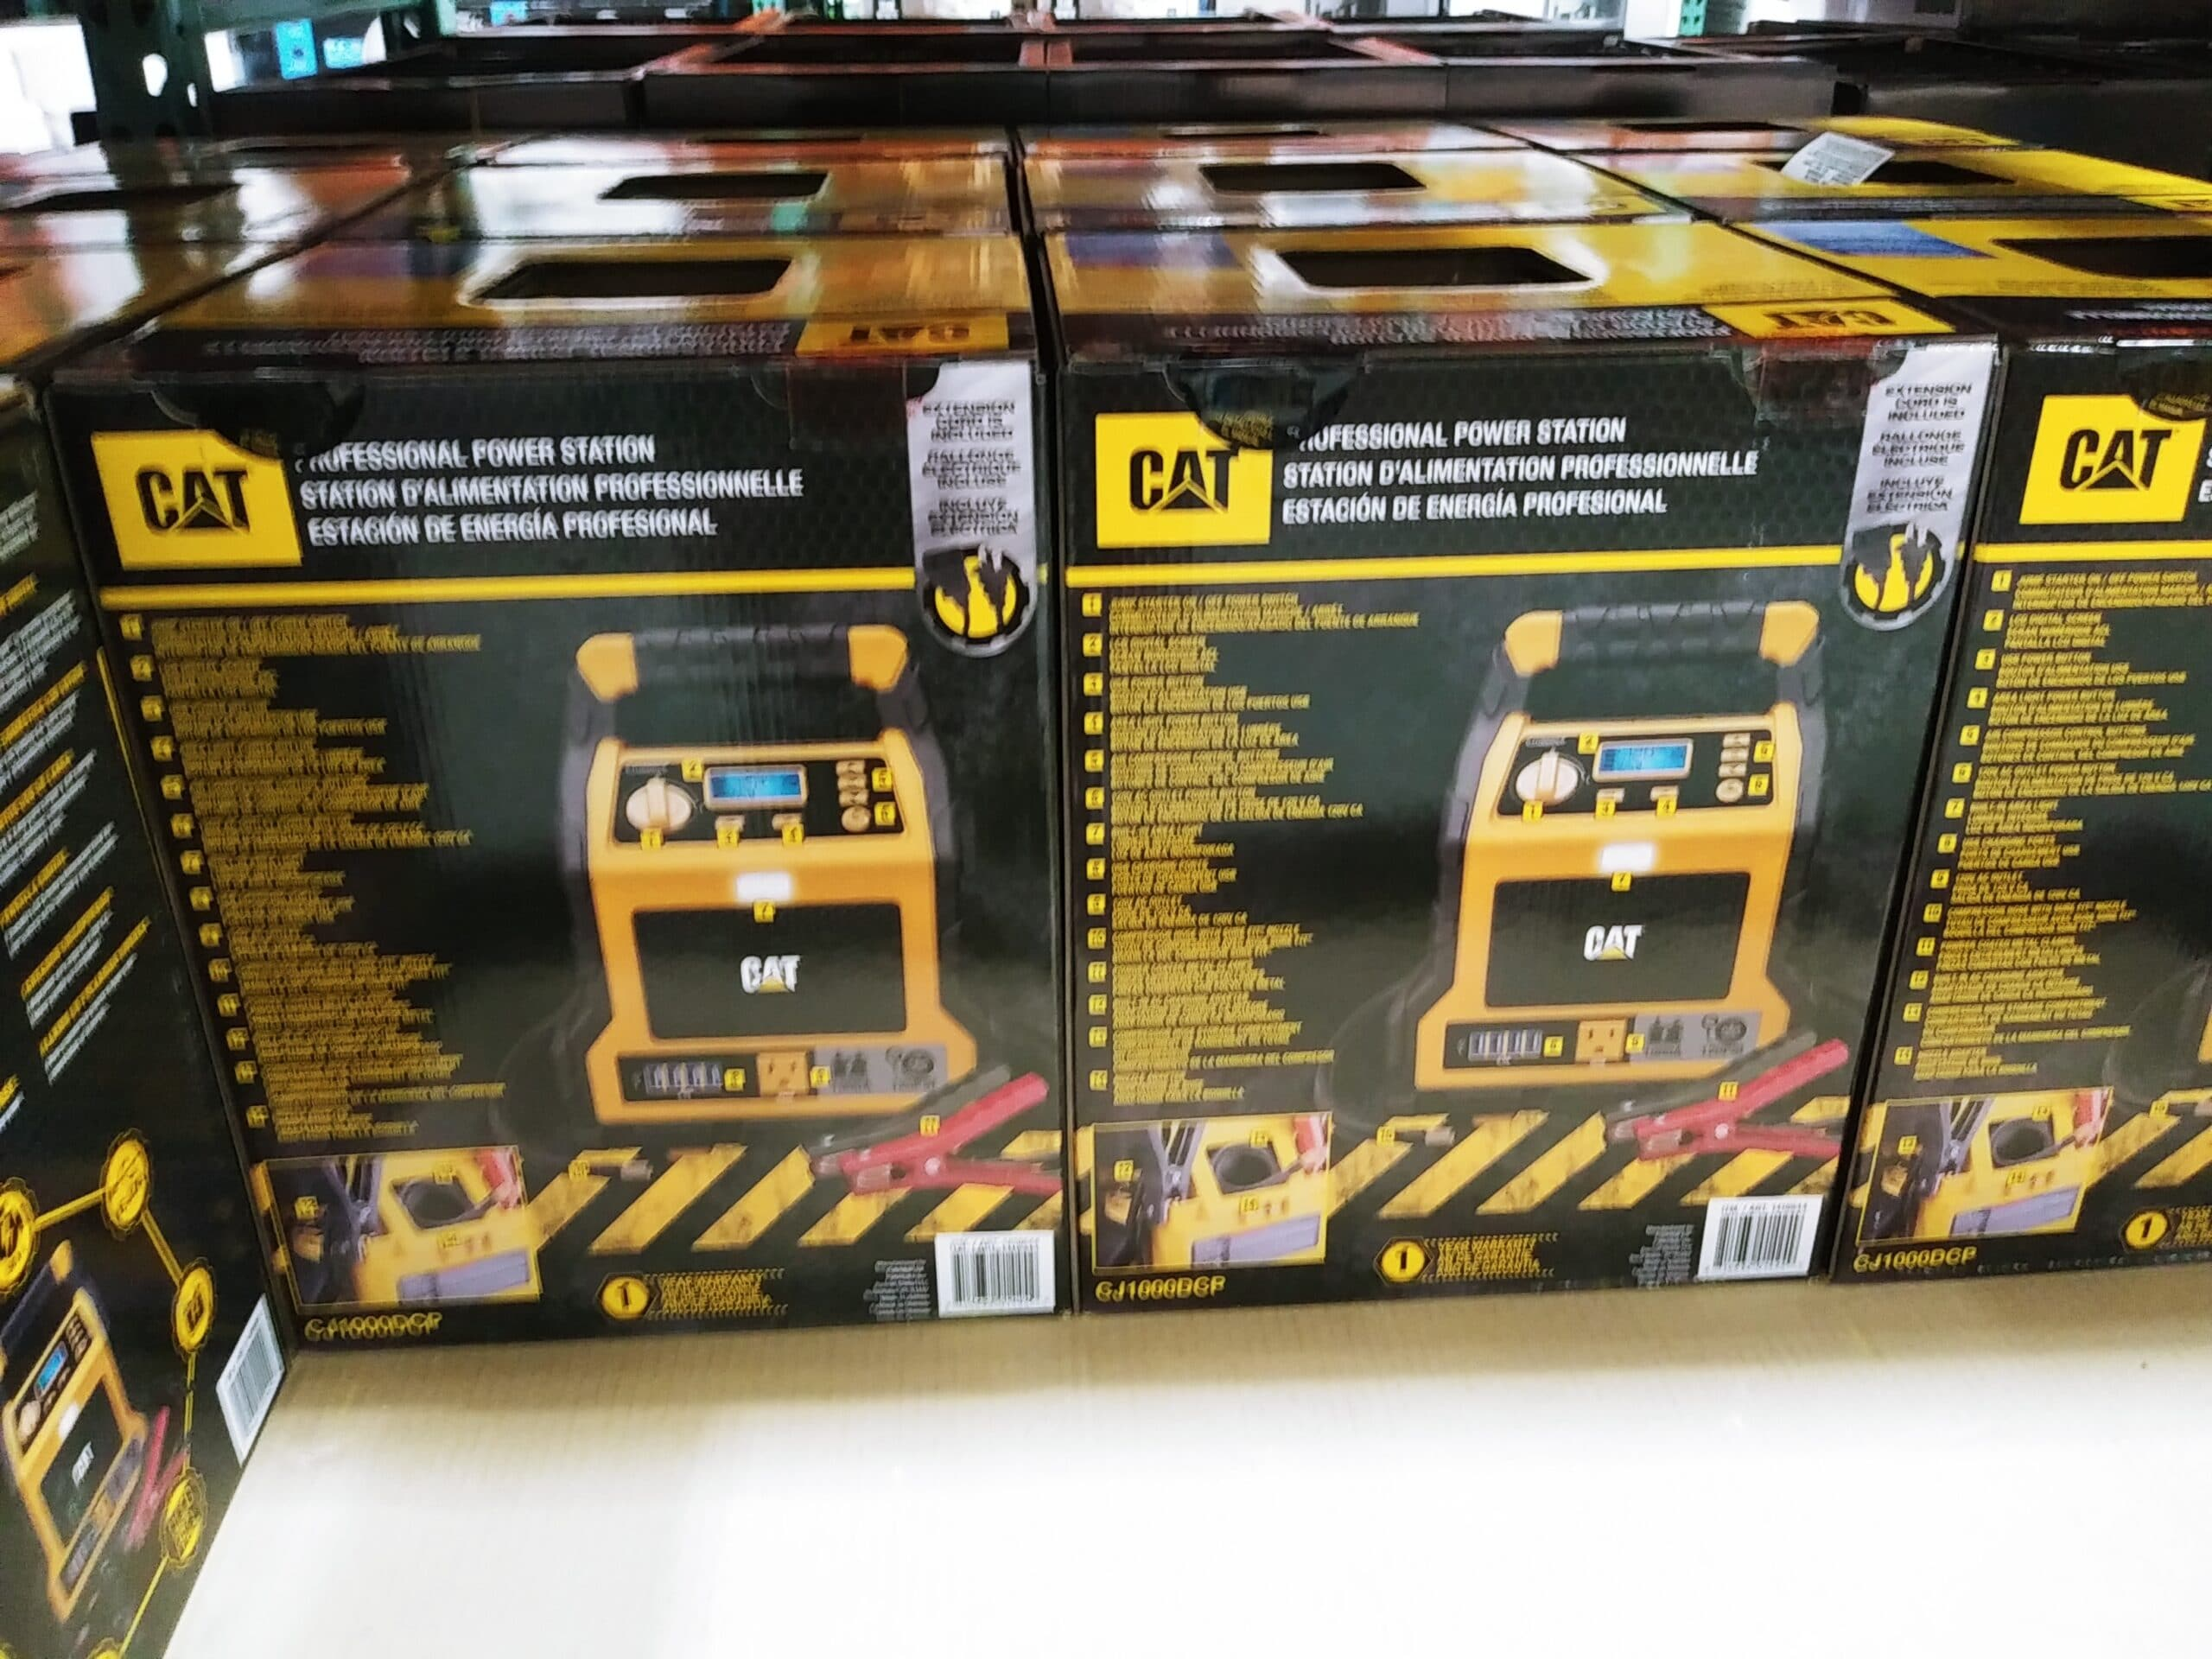 Cat 1000 Professional Power Station $79.99